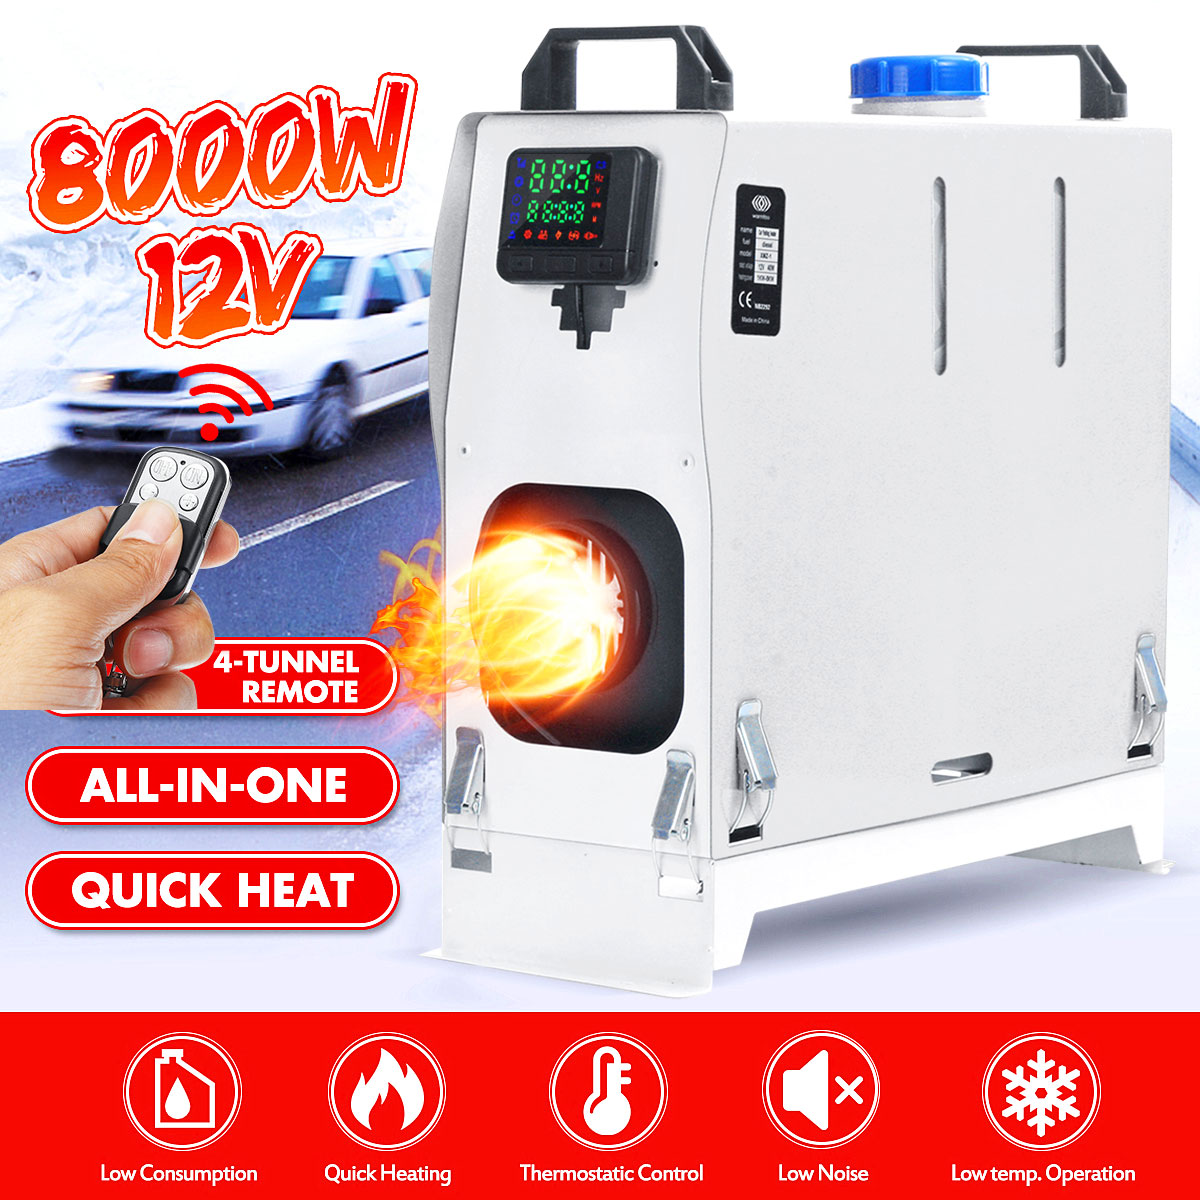 Fuel Oil Heater Car Air Heater 12V 8KW Diesel Air Heater Car Parking Heater Air Conditioner Heater Machine with Remote Control LCD Display for Truck Boat Van